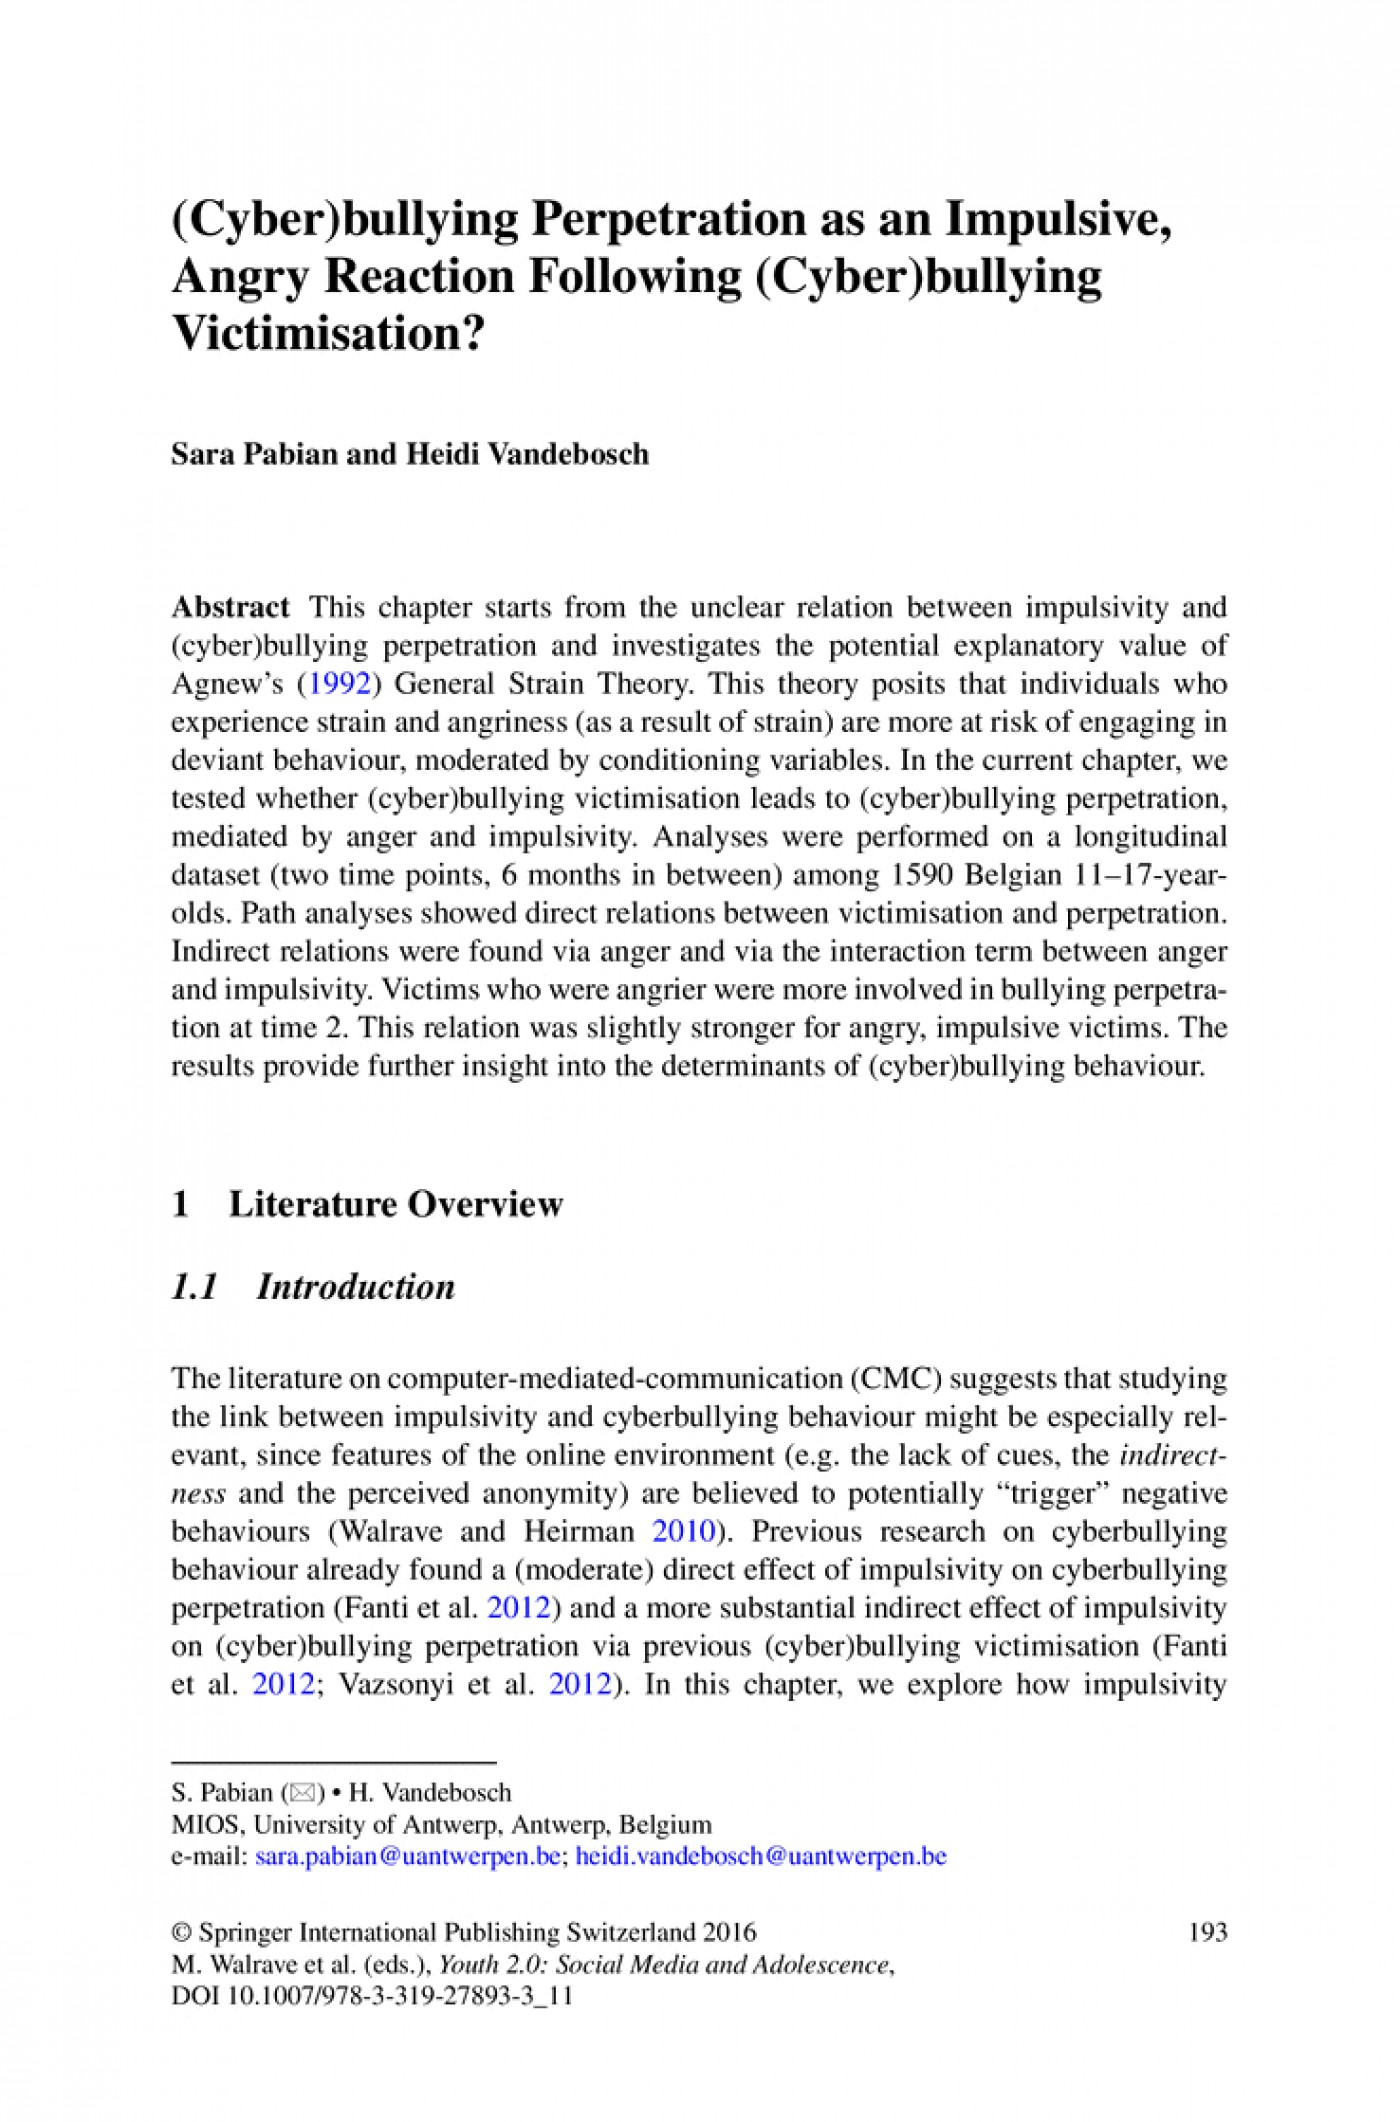 019 Conclusion For Research Paper About Social Media Bullying Essays Cyberbullying Cover Awful 1400